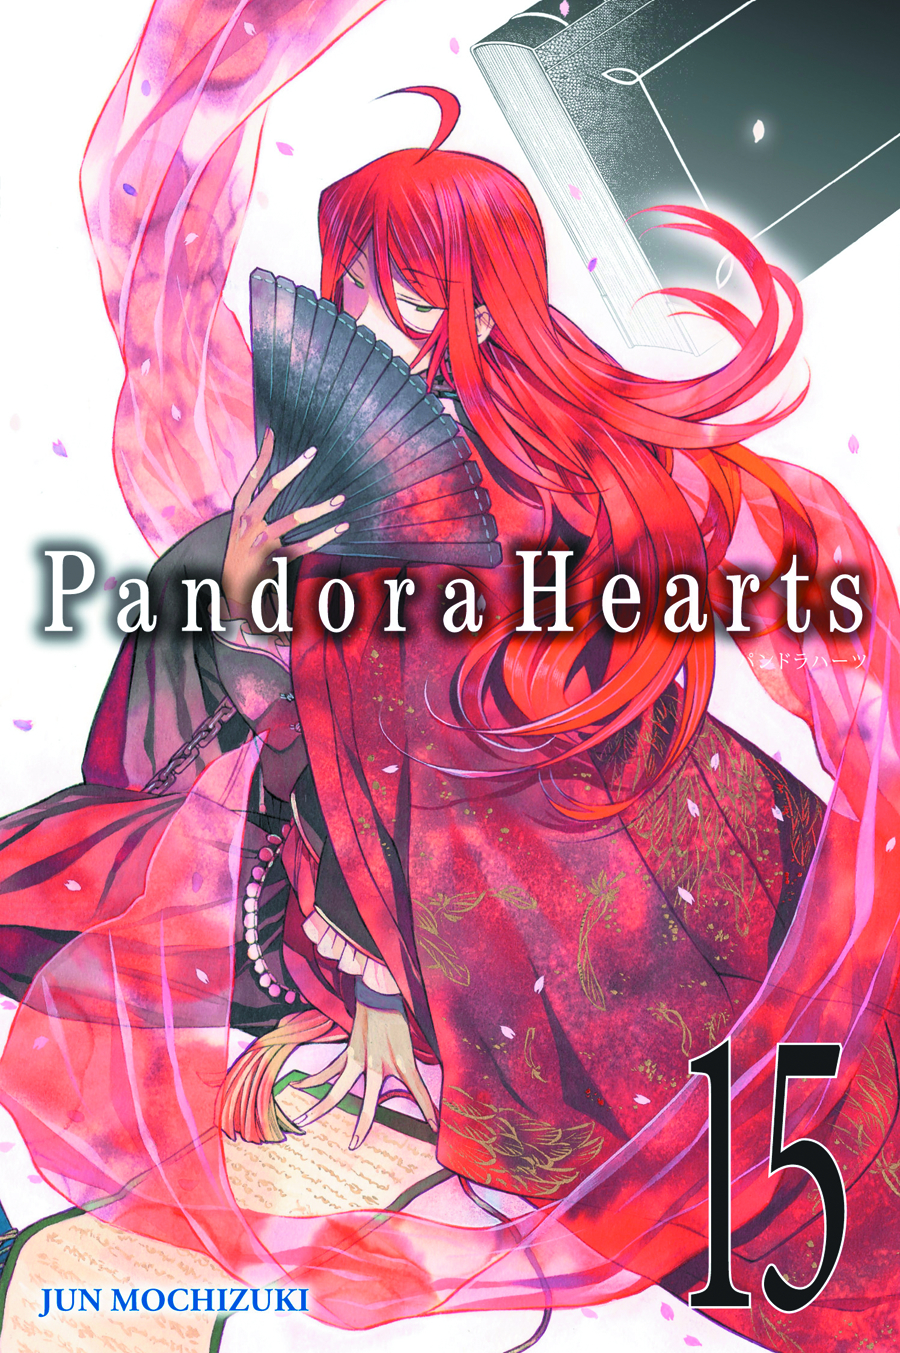 PANDORA HEARTS GN VOL 15